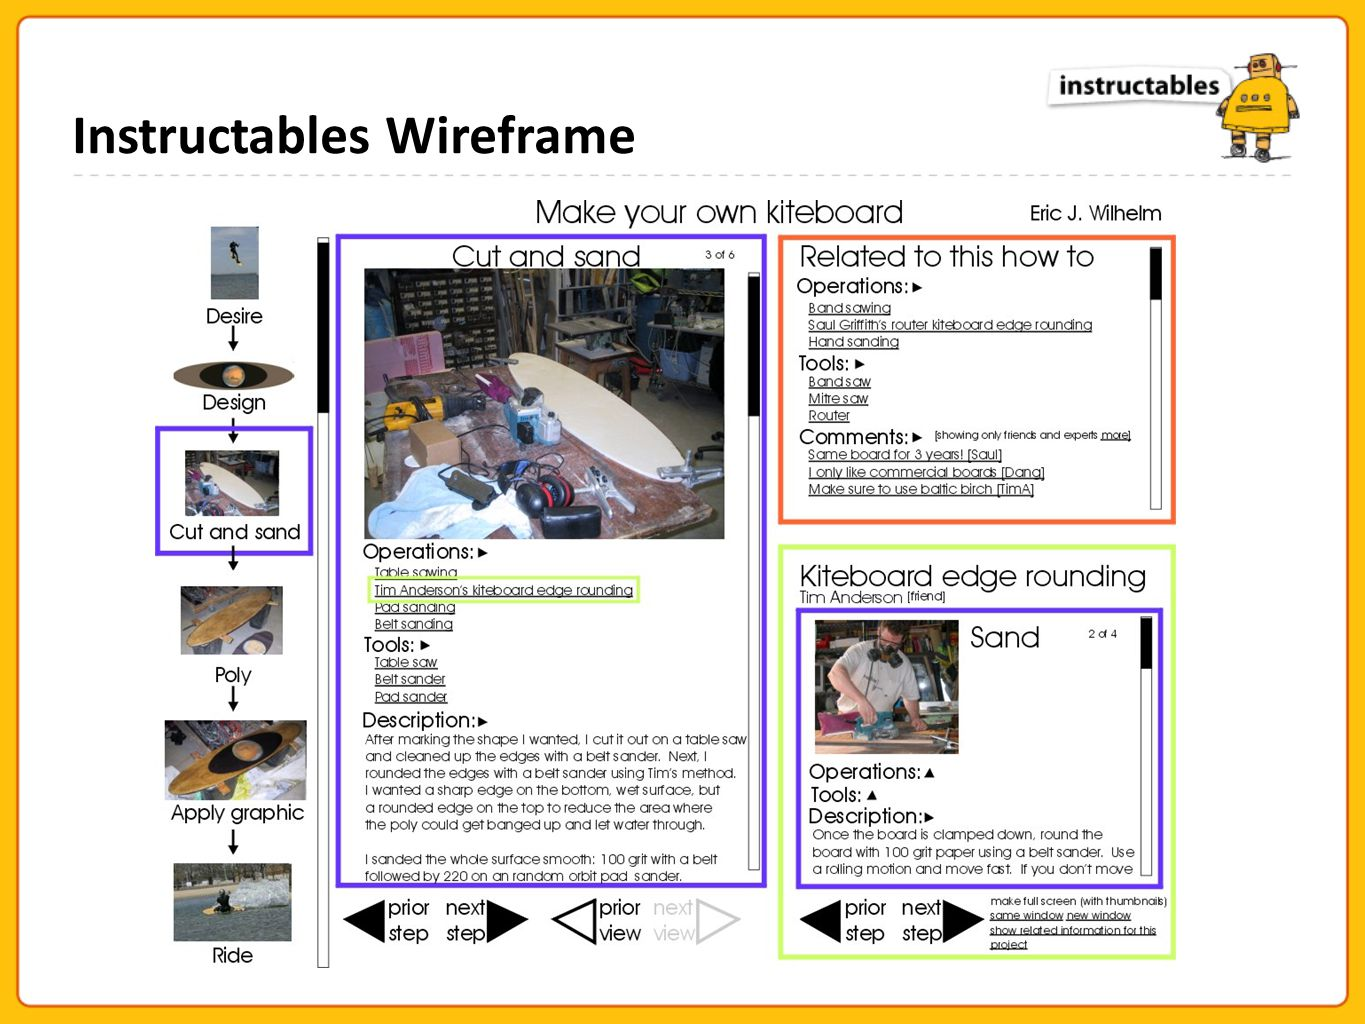 Instructables Wireframe